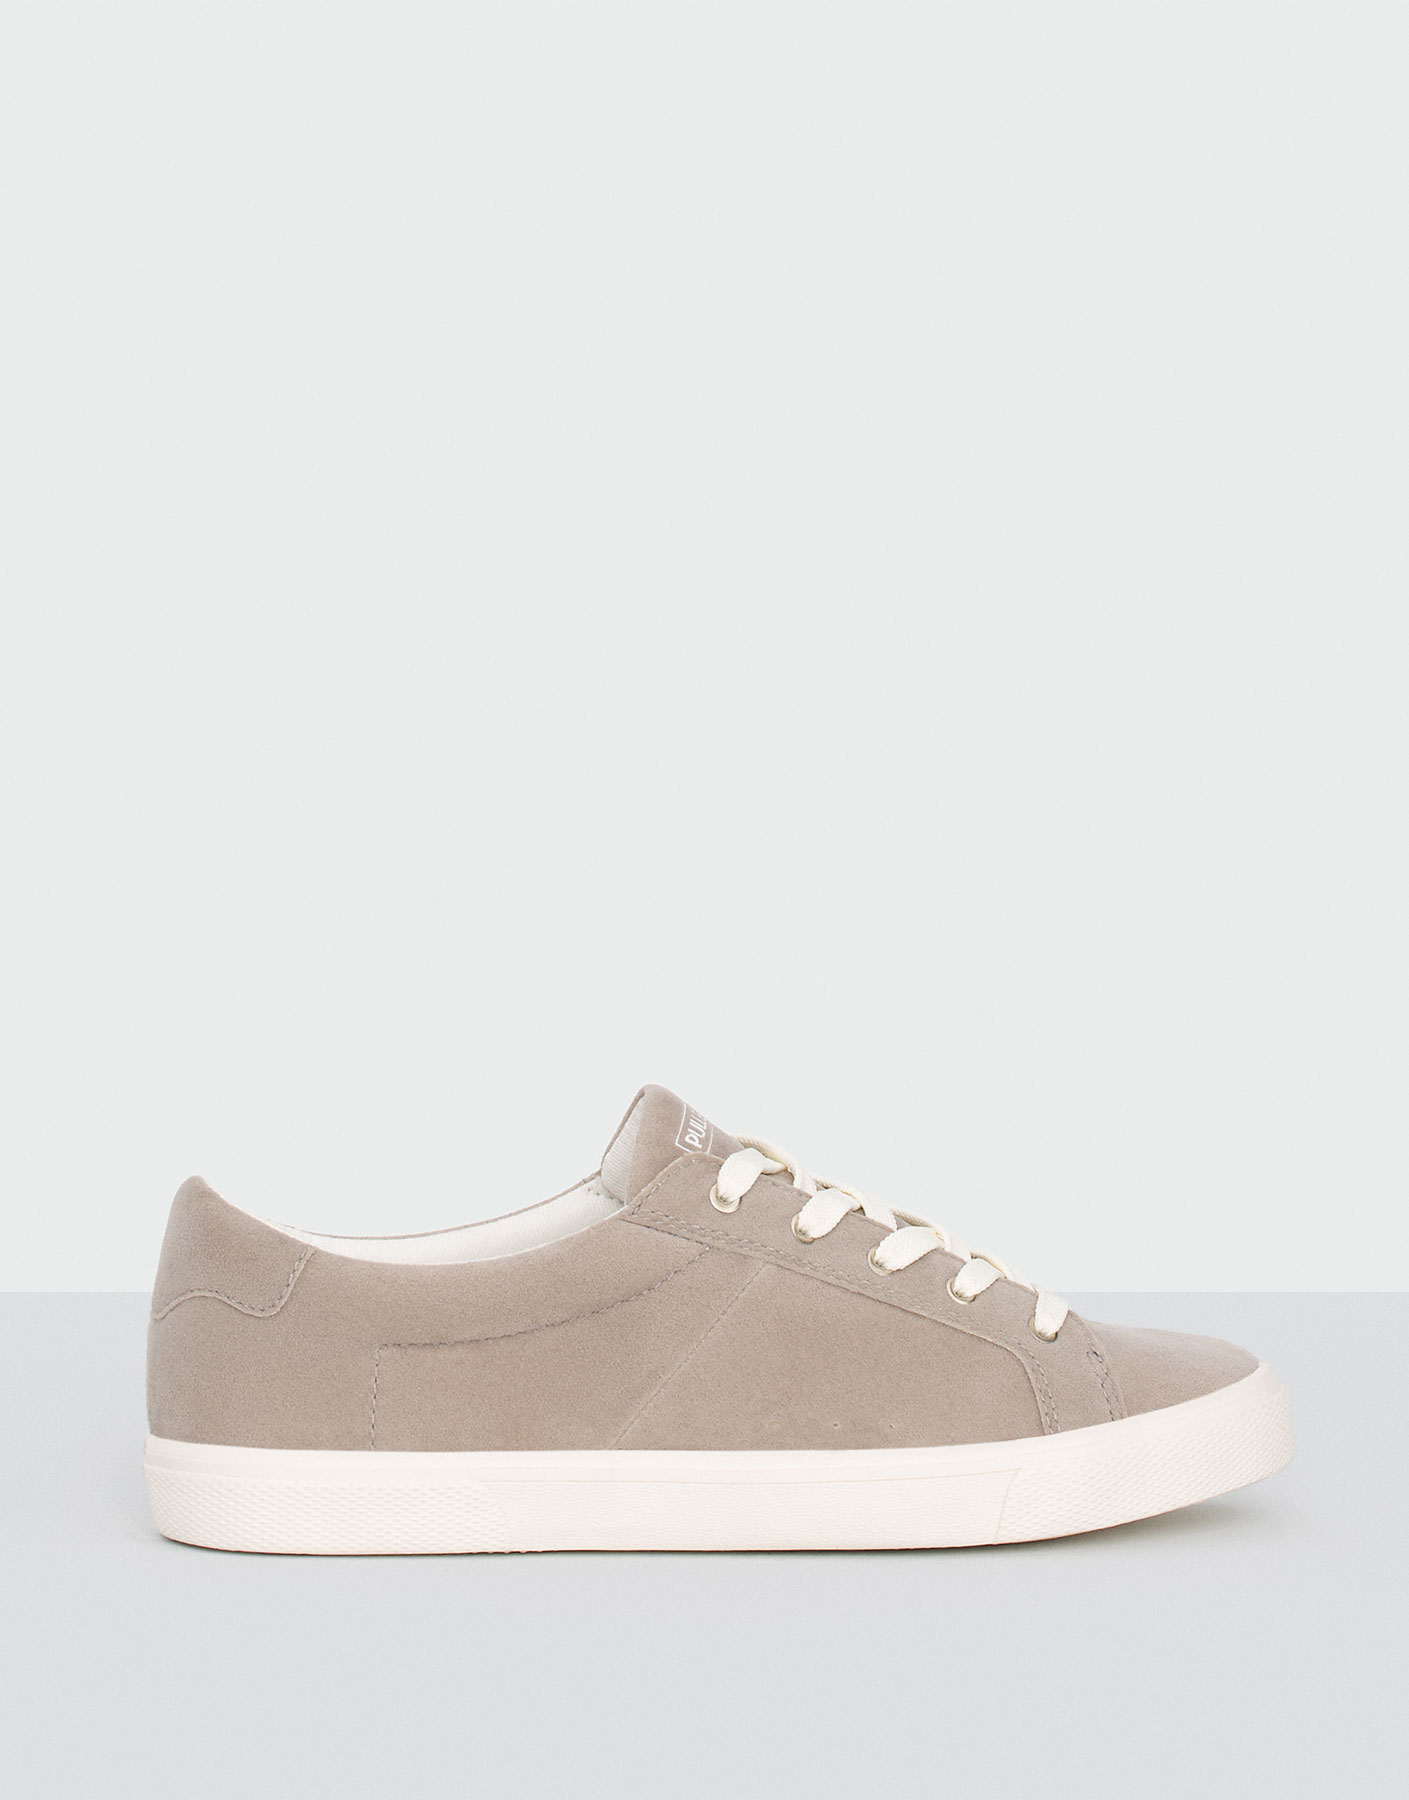 Basic grey plimsolls